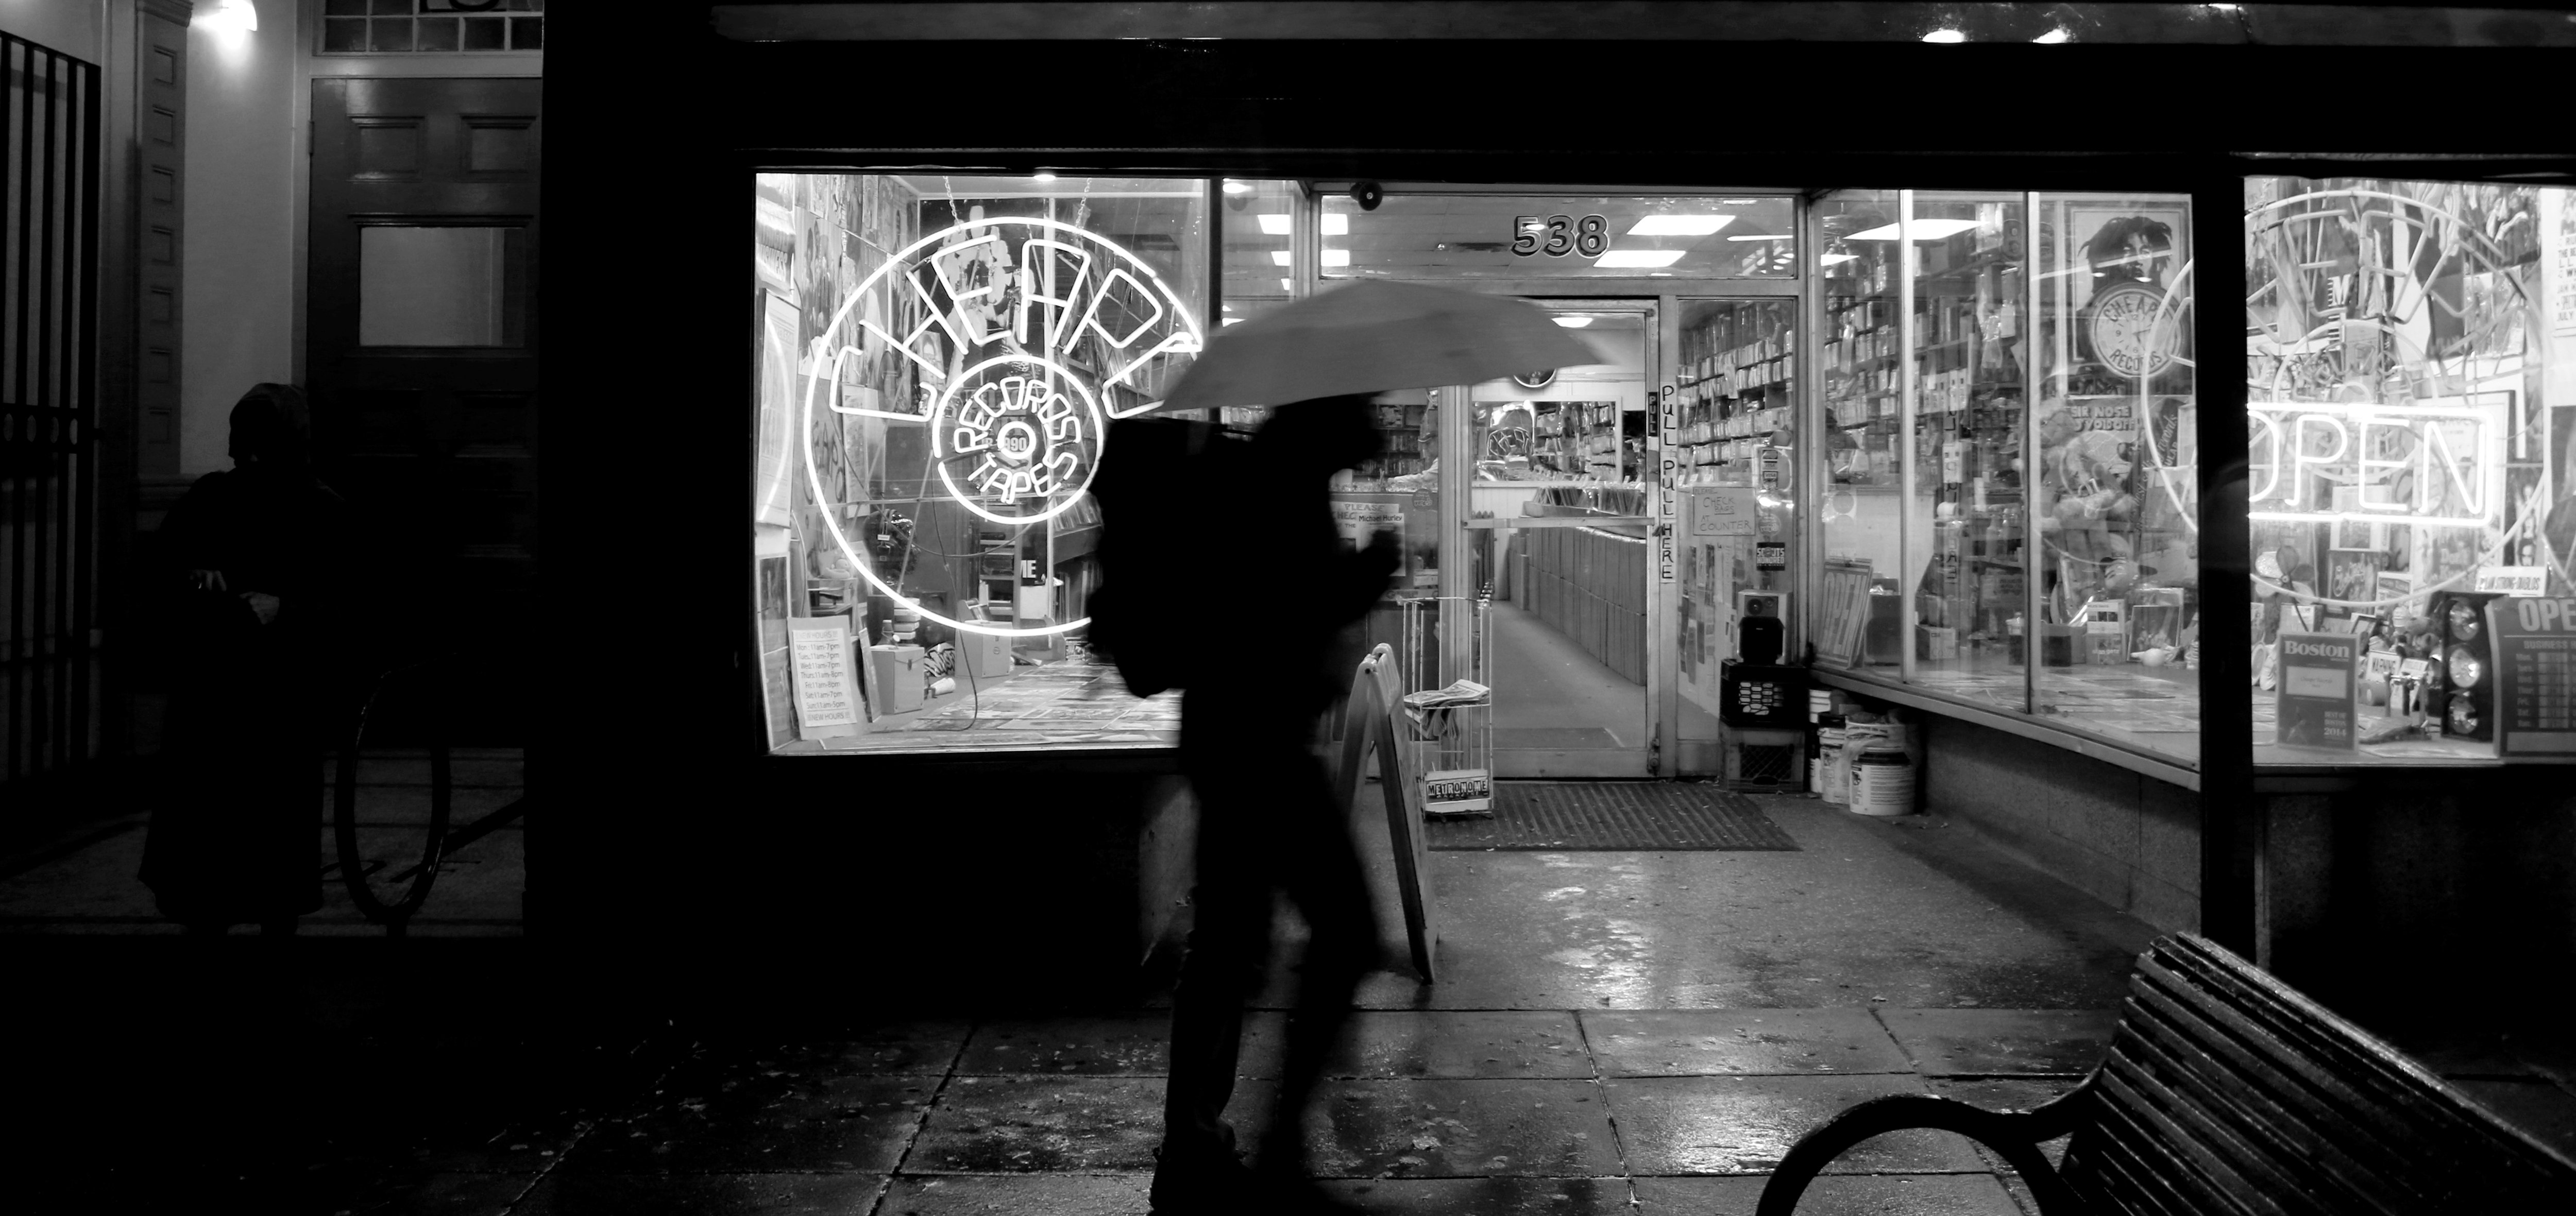 The 7D Mark II handled being stuck in a downpour perfectly, letting us get this shot in front of a record store.